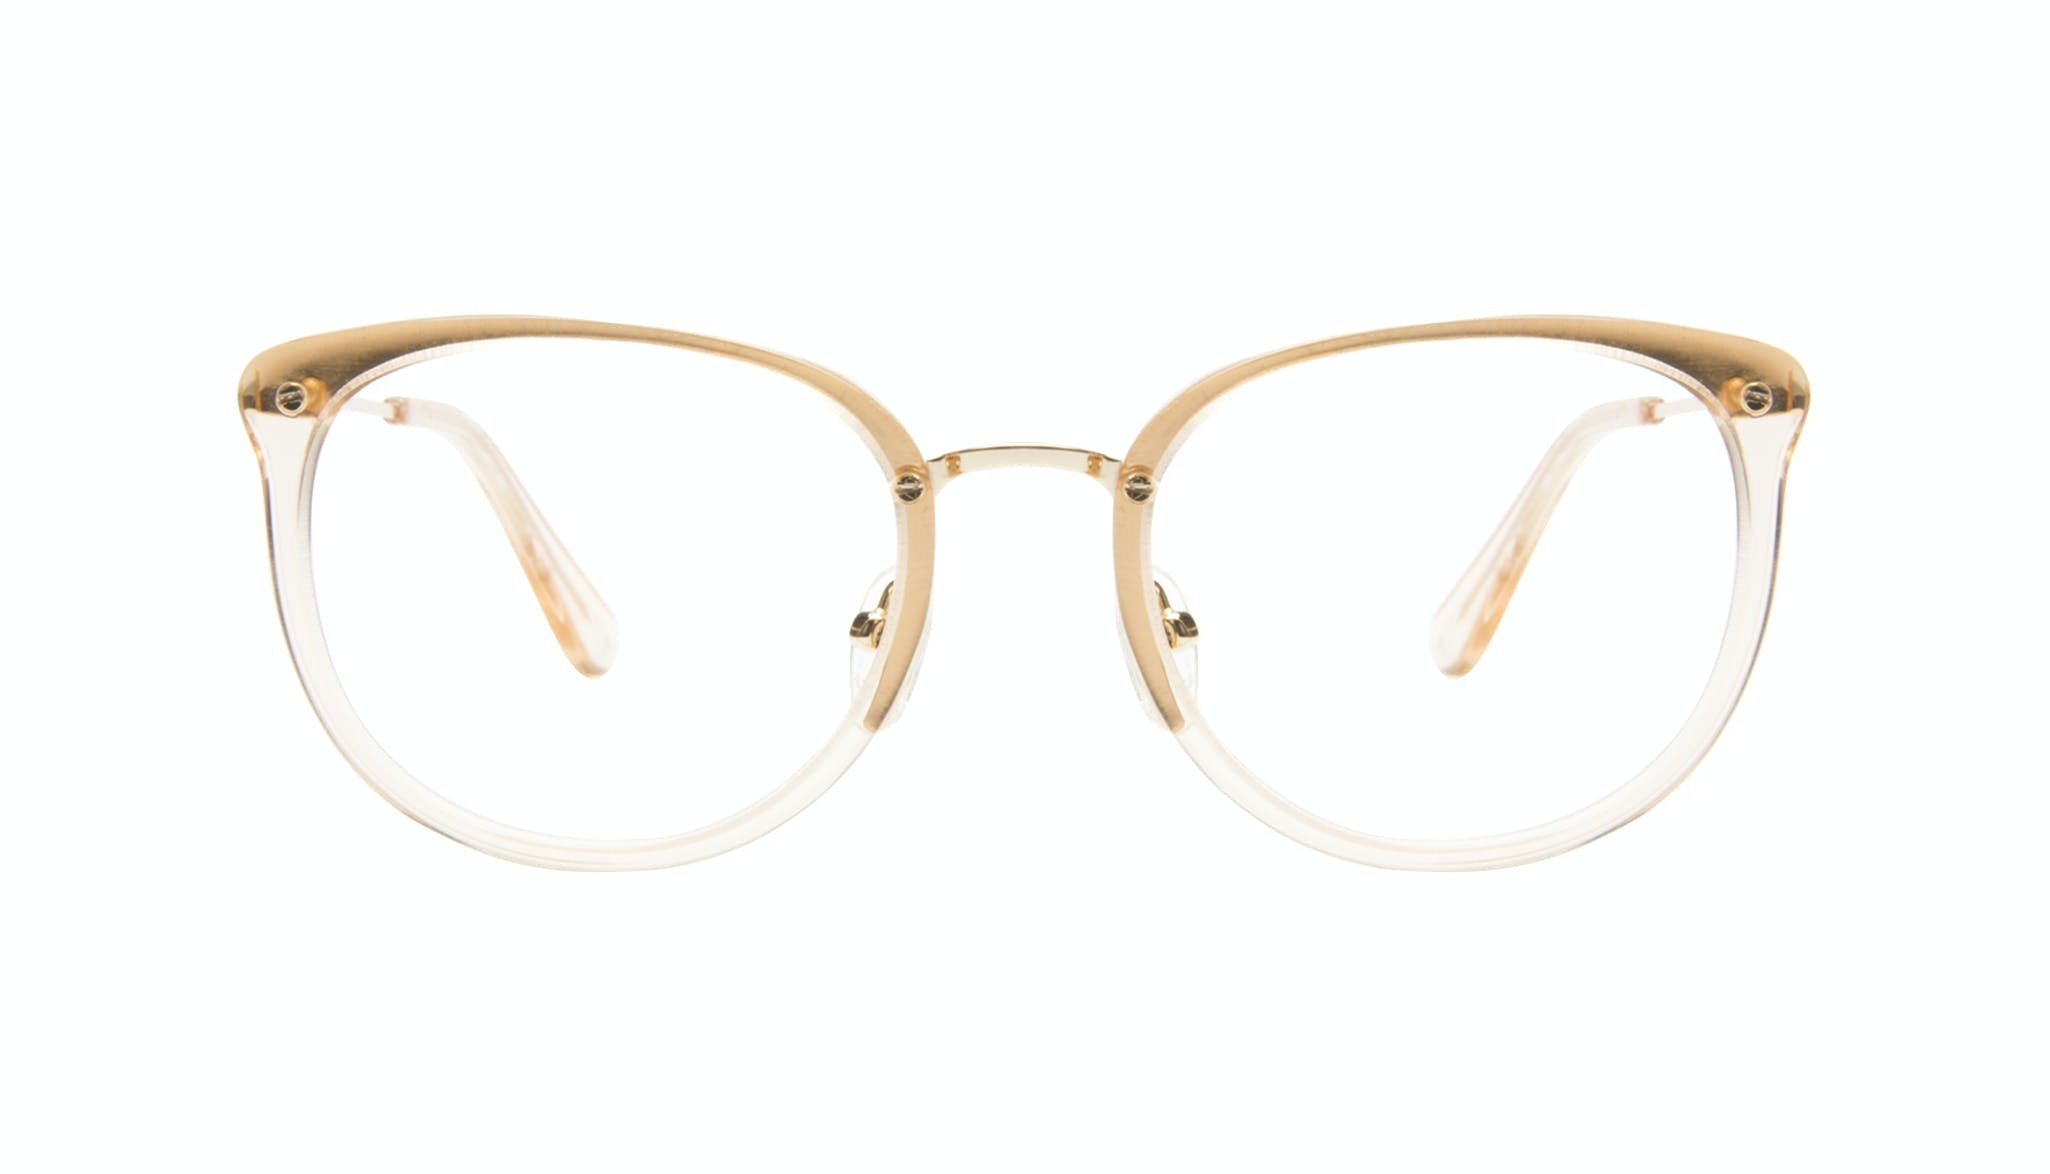 Affordable Fashion Glasses Square Round Eyeglasses Women Amaze Blond Metal